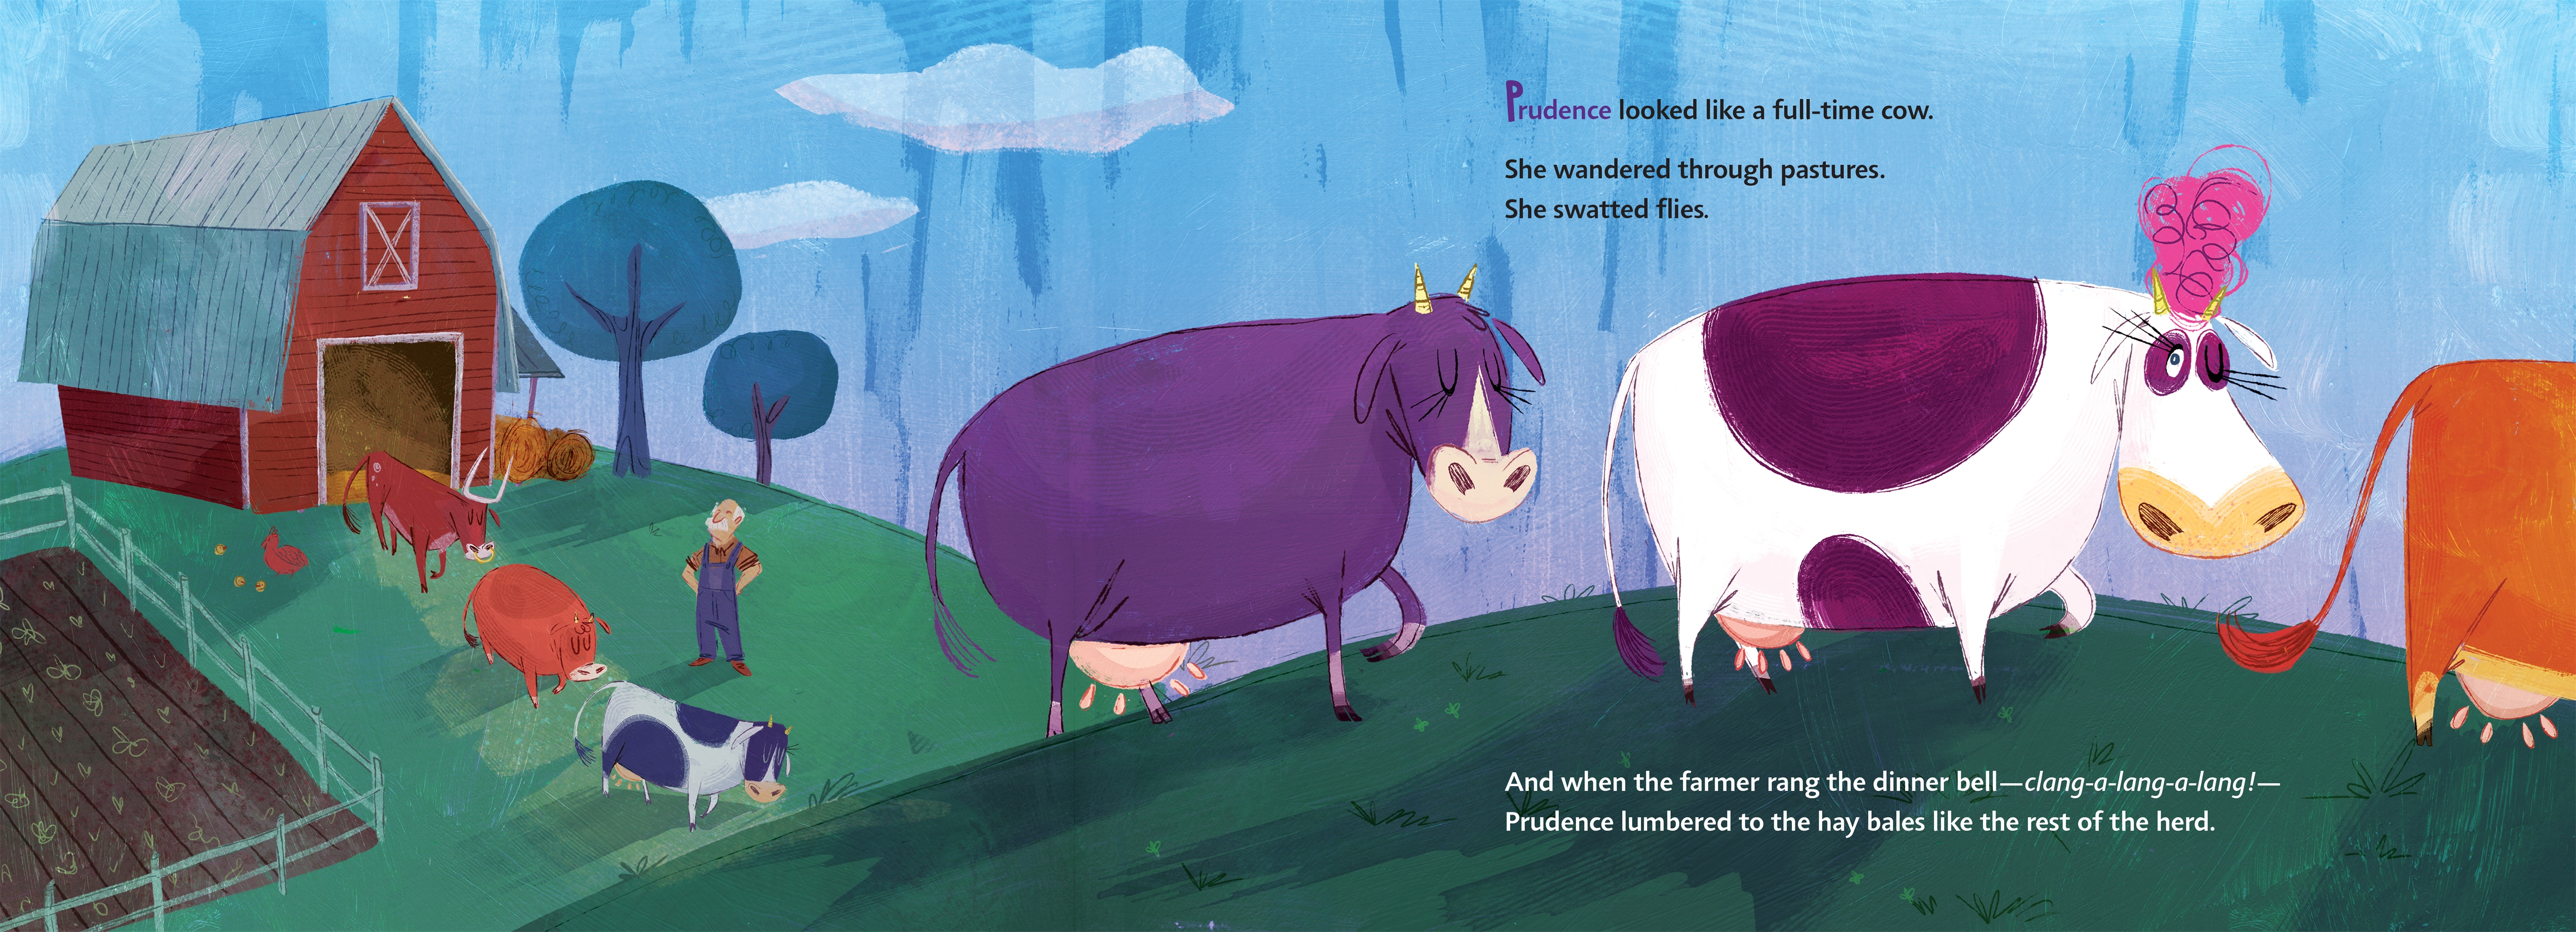 celebrate-picture-books-pciture-book-review-prudence-the-part-time-cow-farm